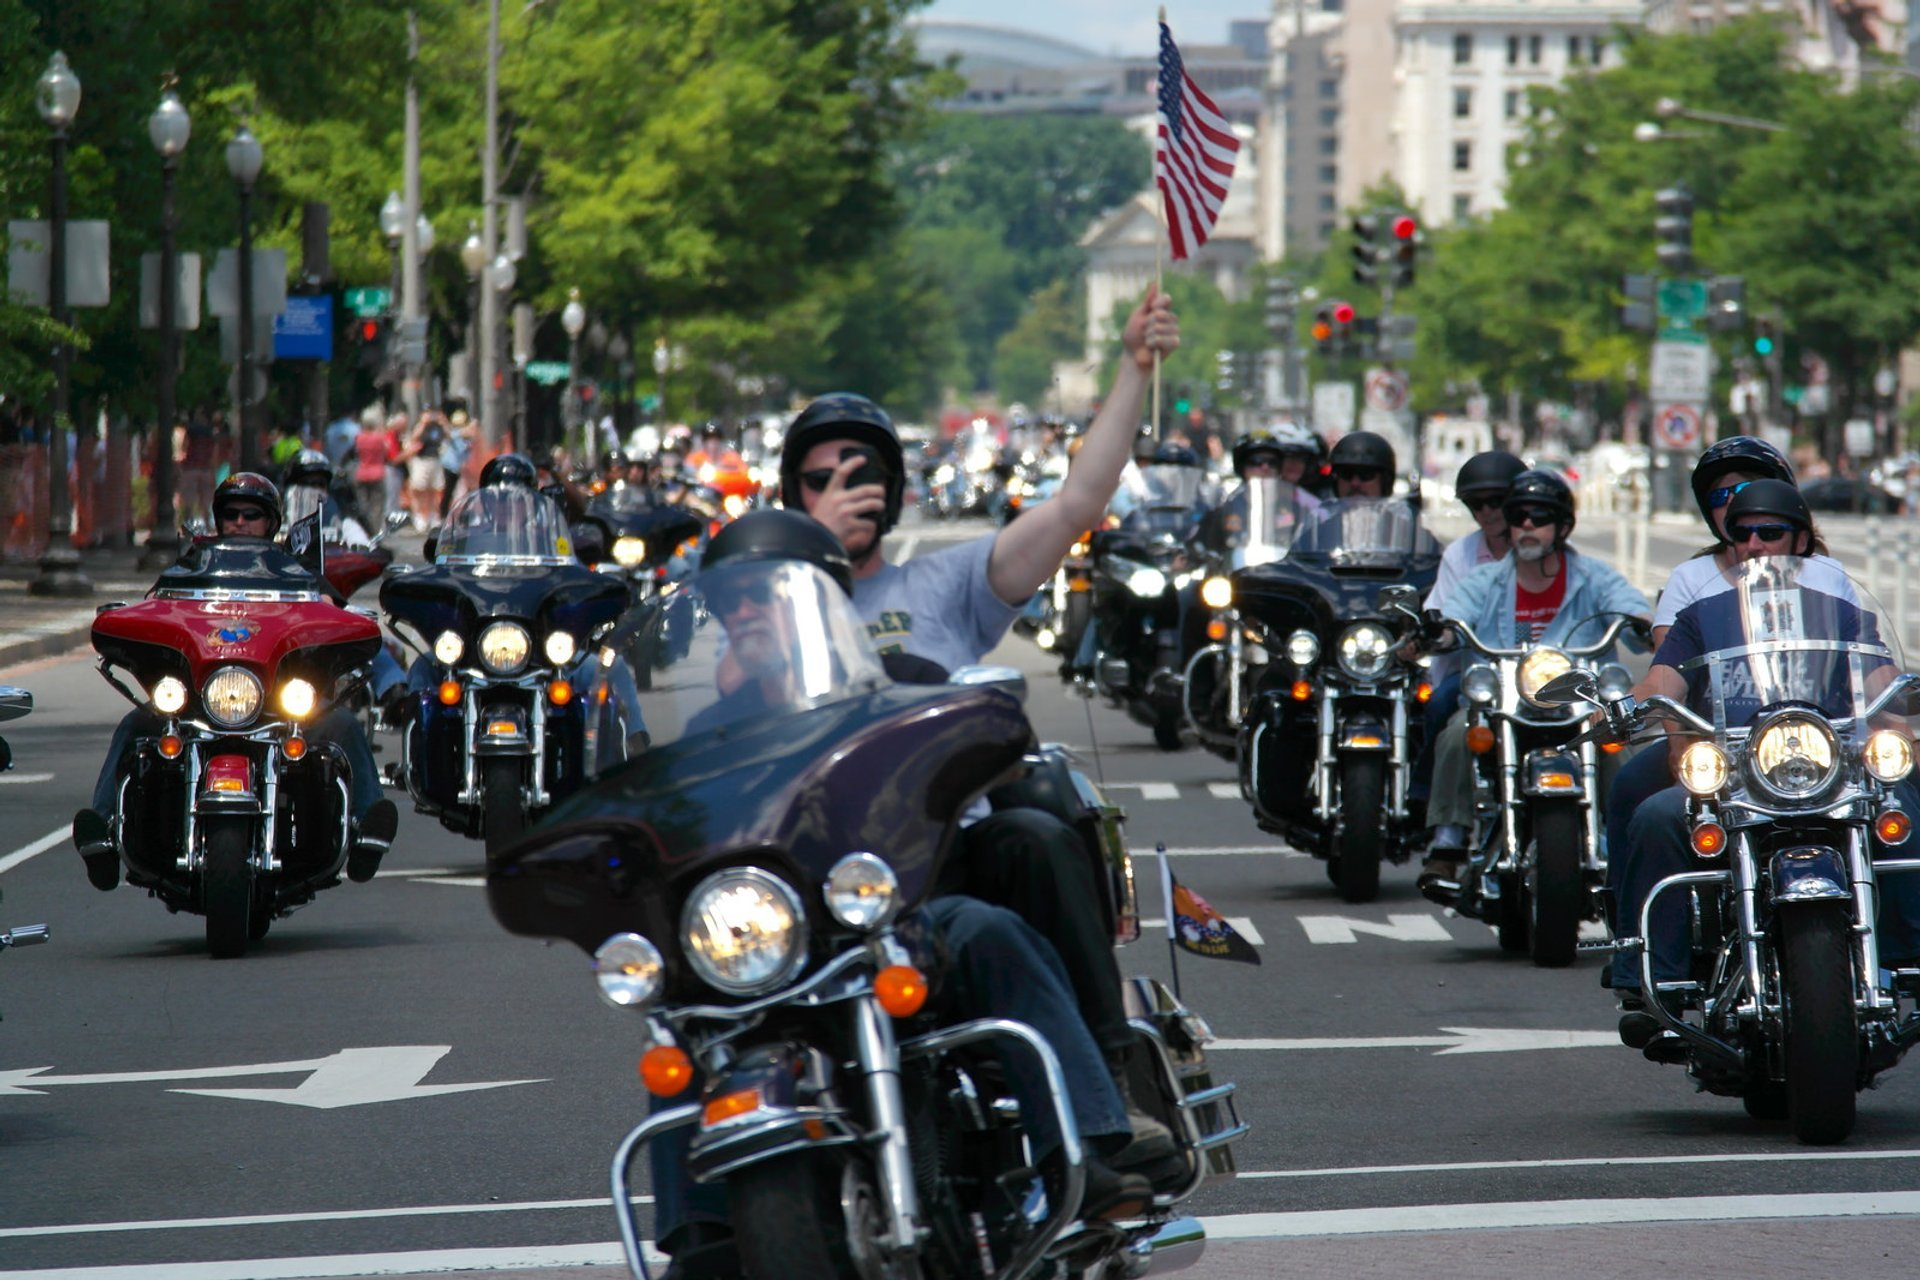 Rolling Thunder 'Ride for Freedom' in Washington, D.C. 2019 - Best Time